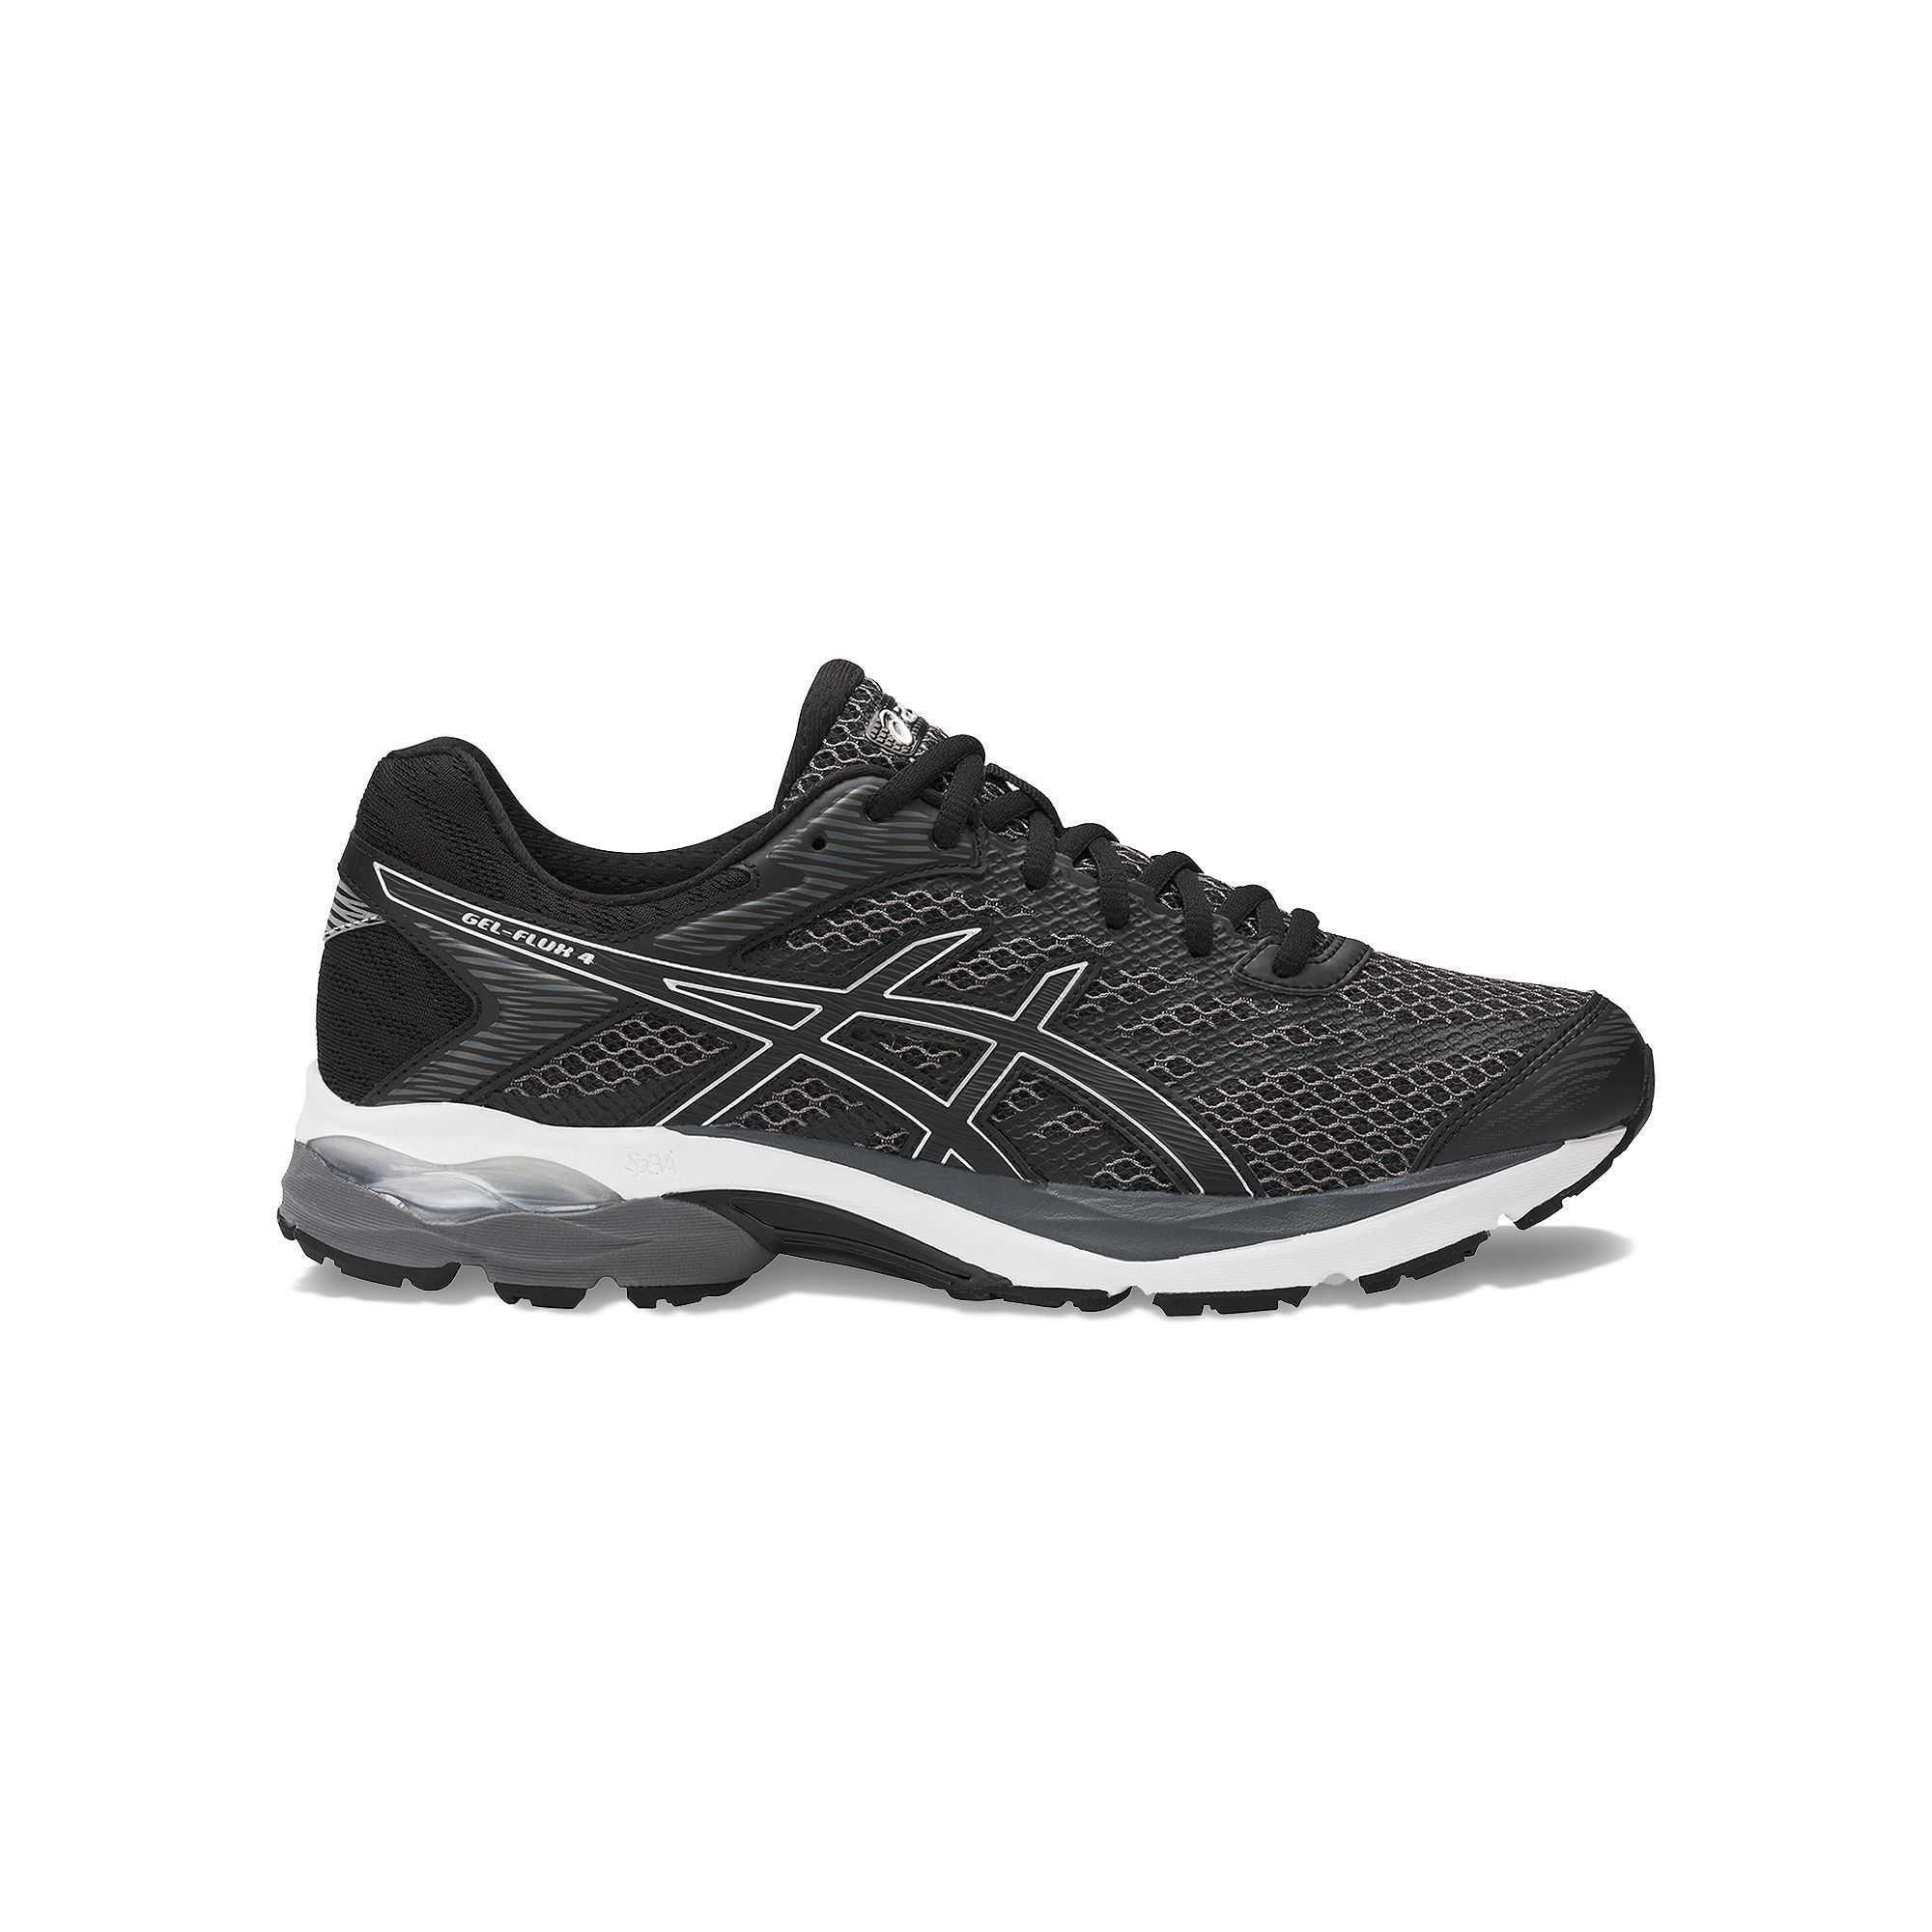 b093ee85a9d ASICS GEL-Flux 4 Men s Running Shoes